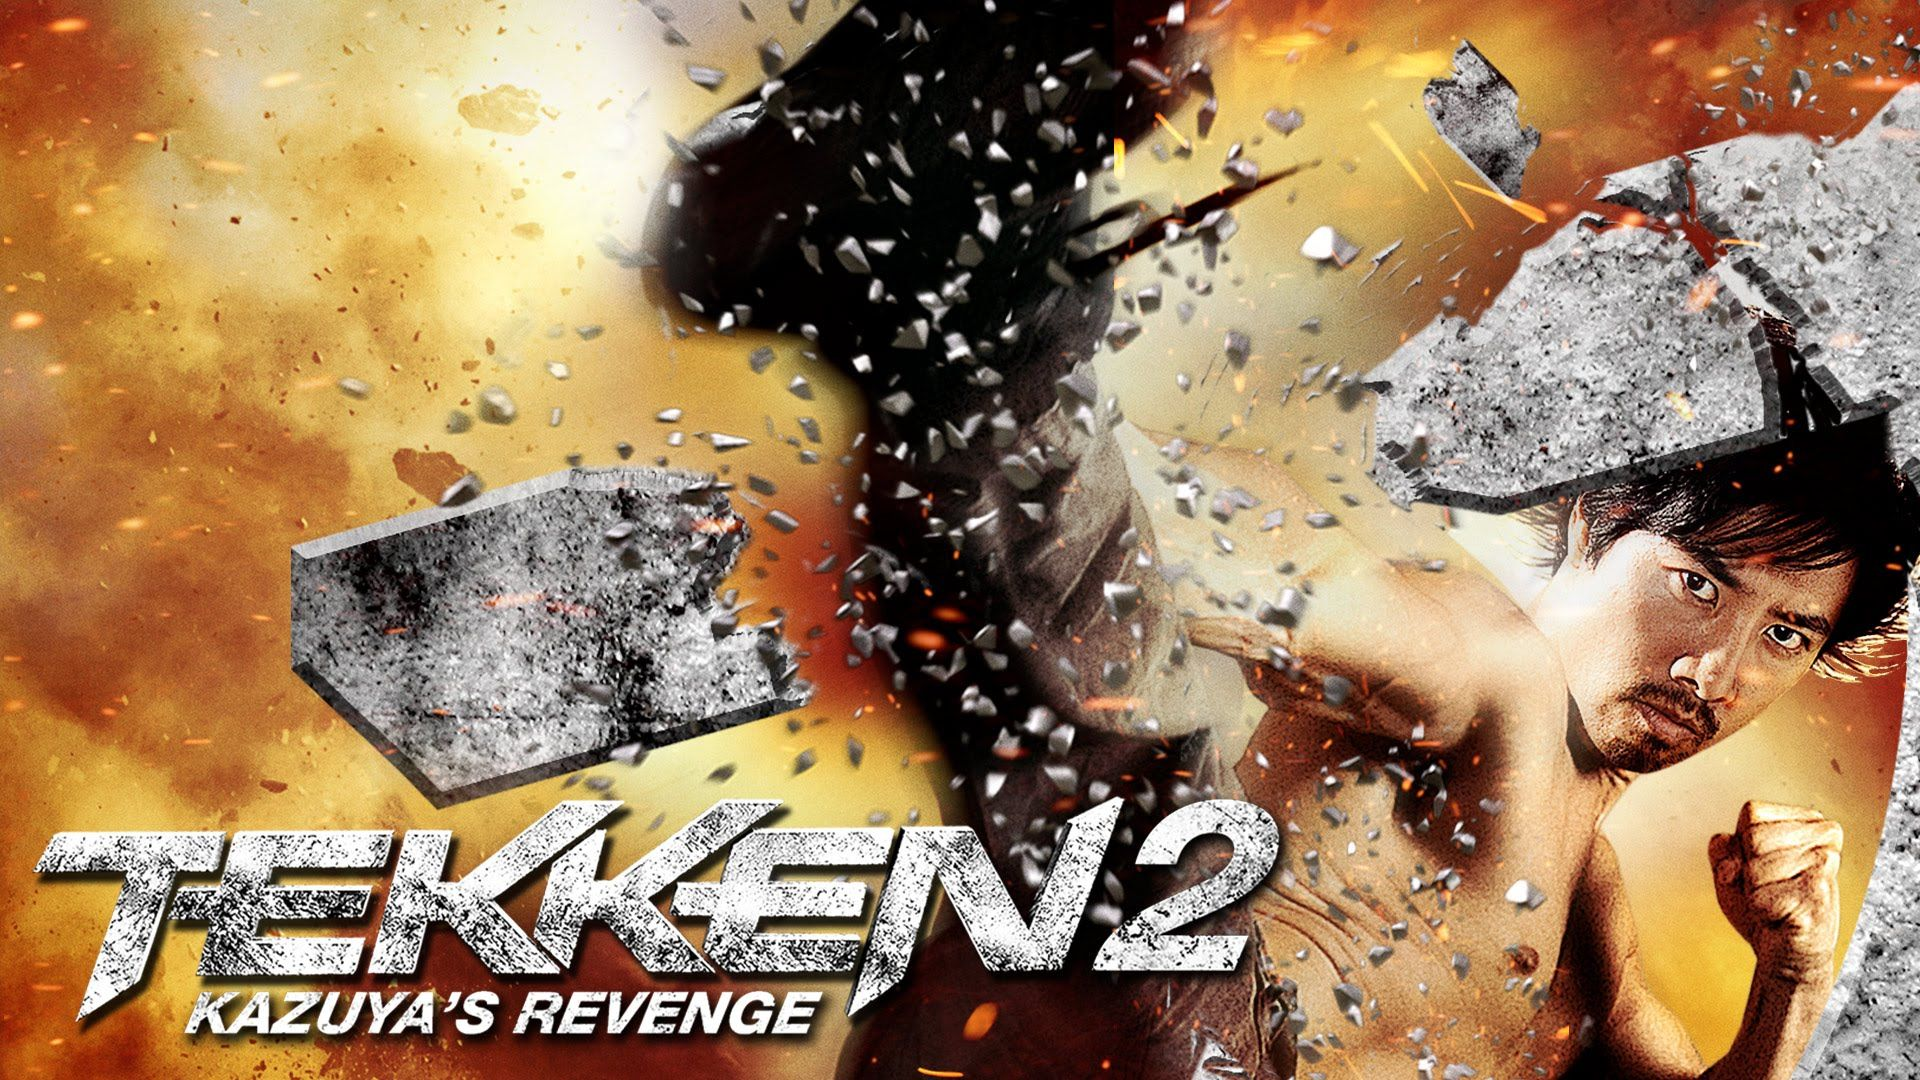 Any Gaming Fans Out There Remember Tekken Then You Might Enjoy